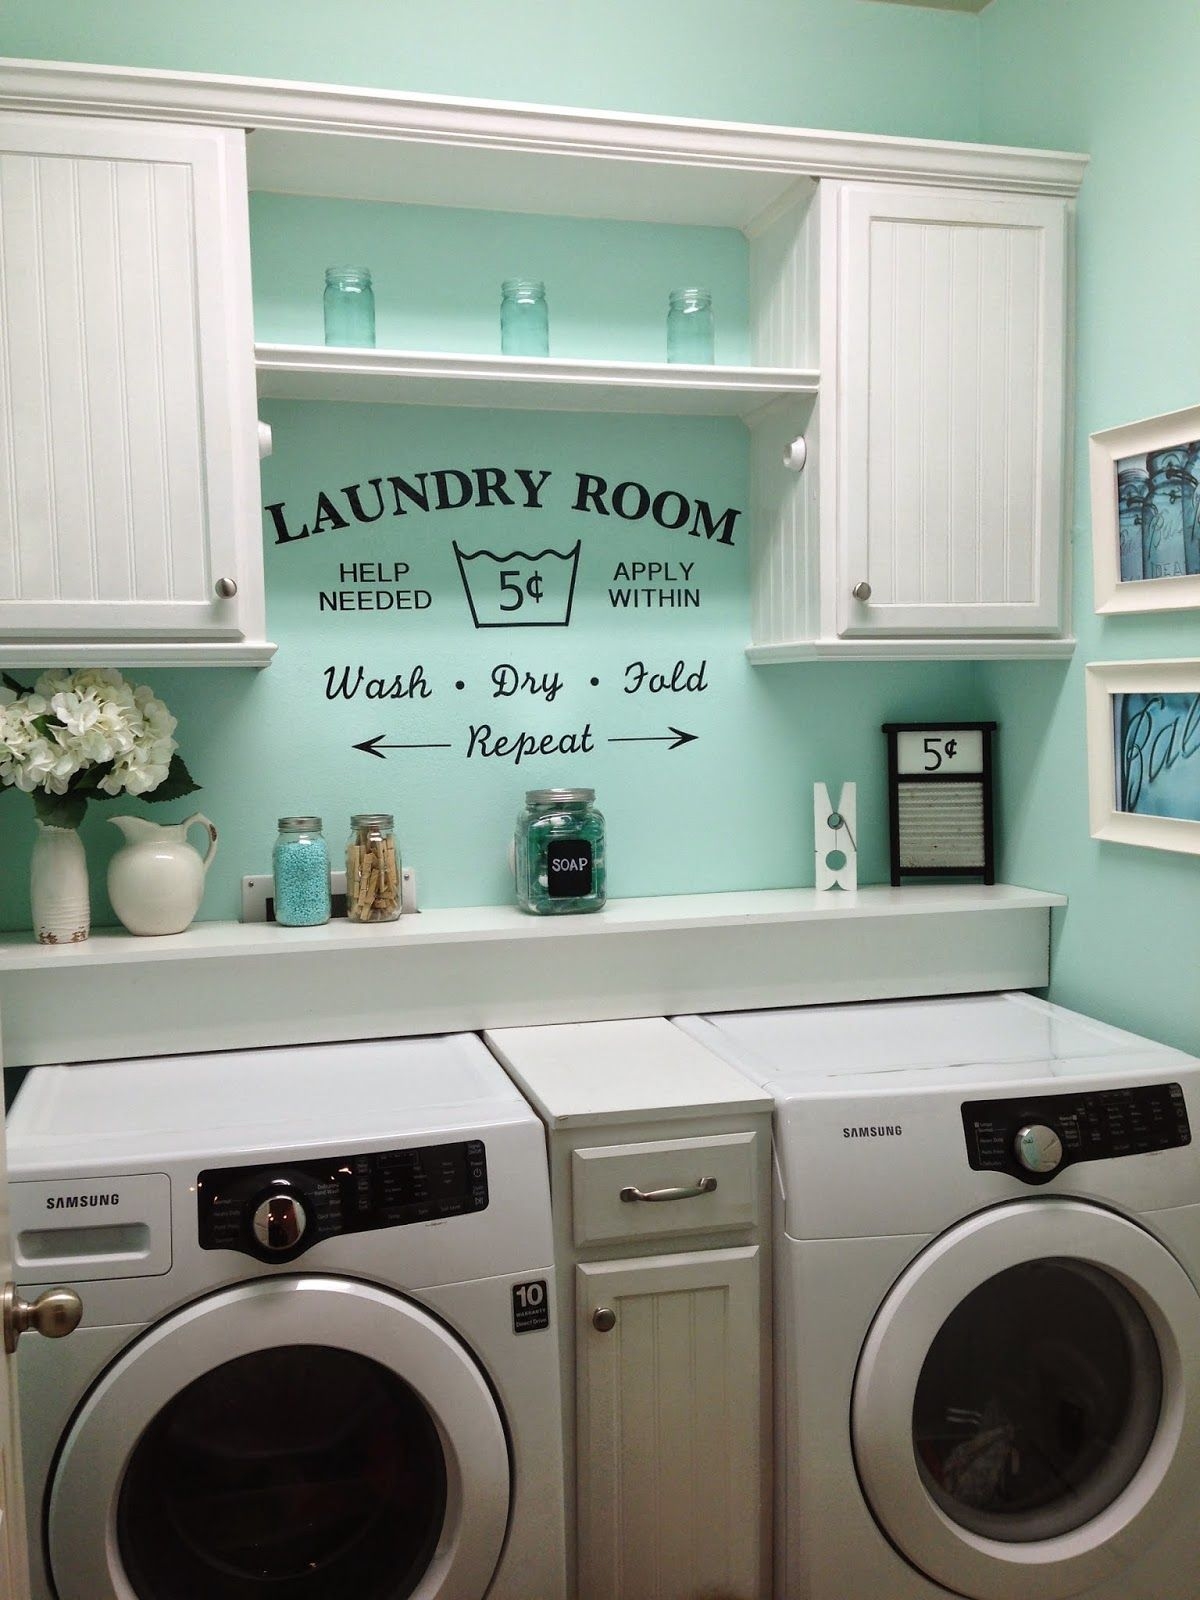 Rustic Shabby Chic Laundry Room  vintage Vinyl decal small laundry     Rustic Shabby Chic Laundry Room  vintage Vinyl decal small laundry room